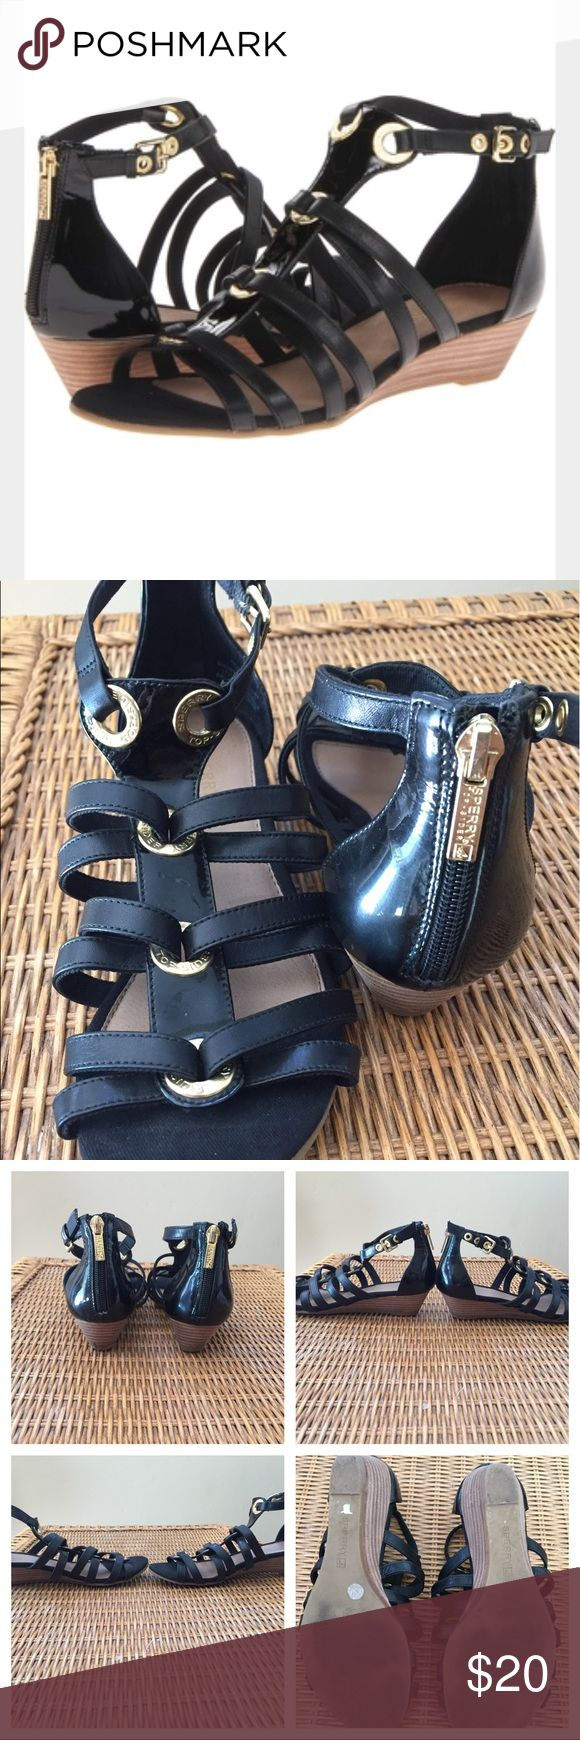 "Sperry Top-Sider ""Grace"" Sandals Leather/Patent Black leather on straps, black patent leAther in back and center front if sandal. Low wedge heal. Gold rings and back zipper. First photo is stock photo; rest are of actual shoe for sale. 👗👚👜Check out the $6 section of my closet (before the sold items). Lots of bundle-worthy $6 items! 15% bundle discount on 2+ items in a bundle.🚫NO TRADES🚫 Sperry Top-Sider Shoes Sandals"